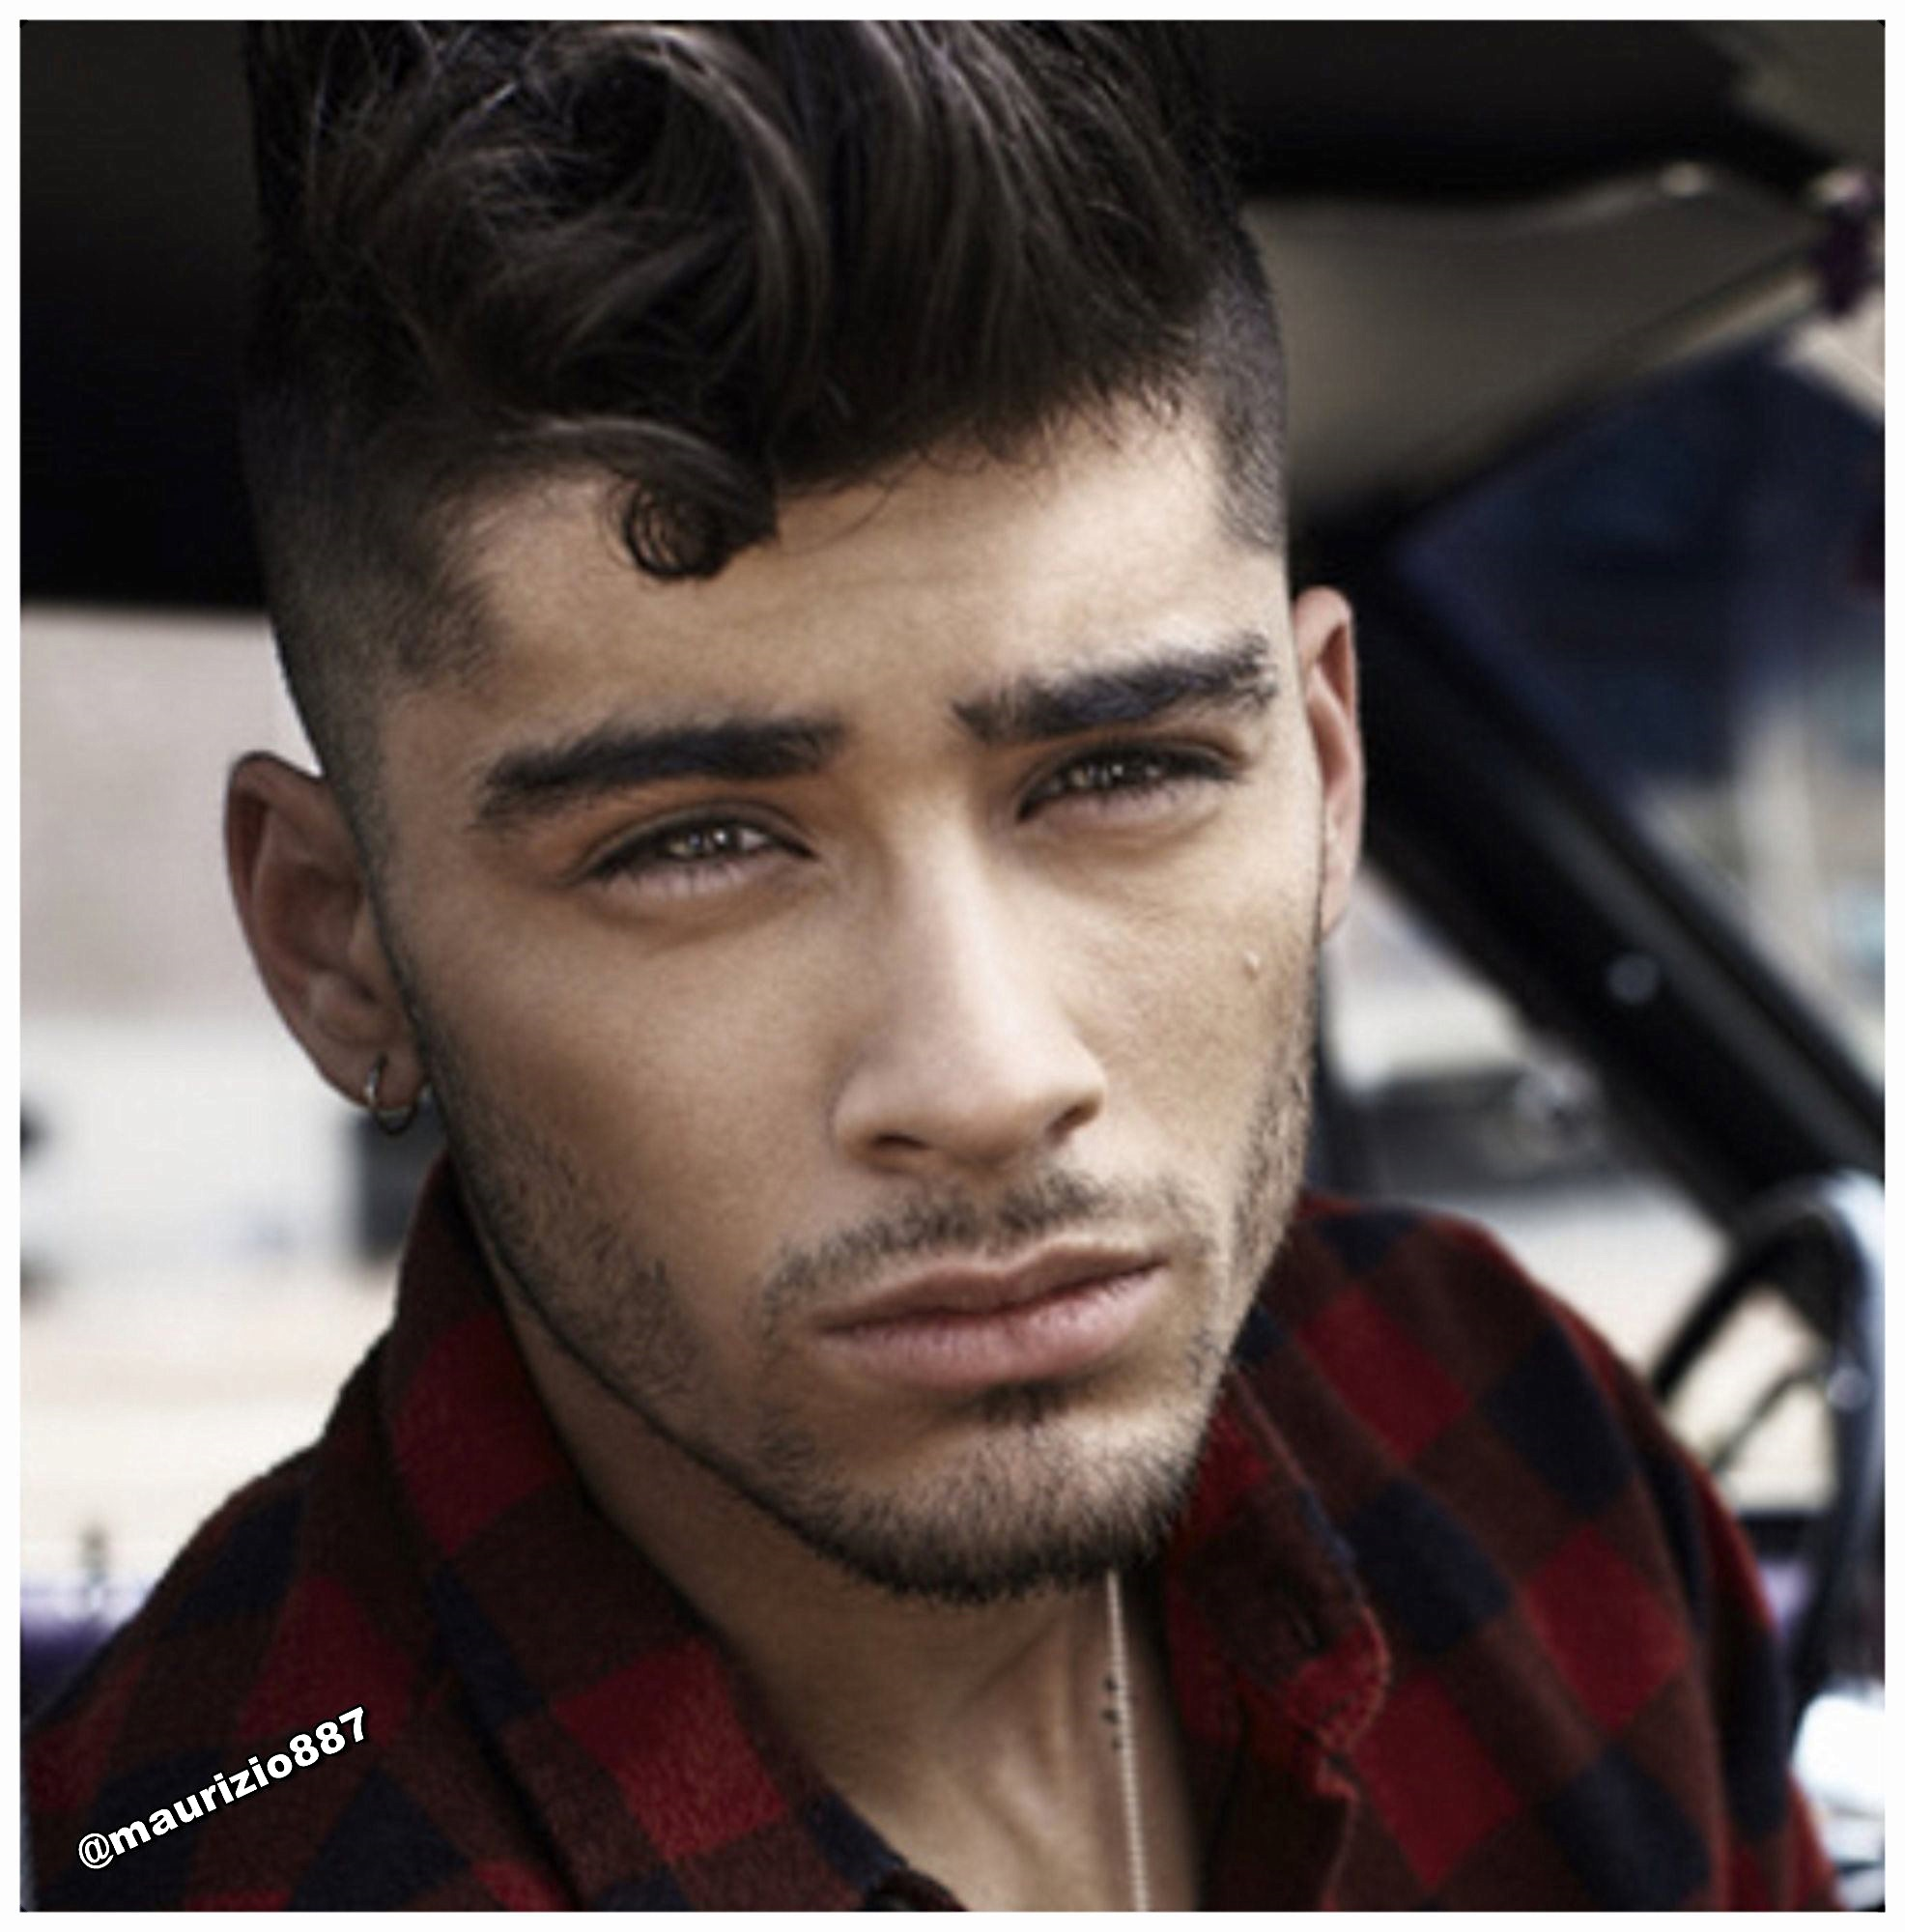 Zayn Malik 2013 Photoshoot The gallery for -->...